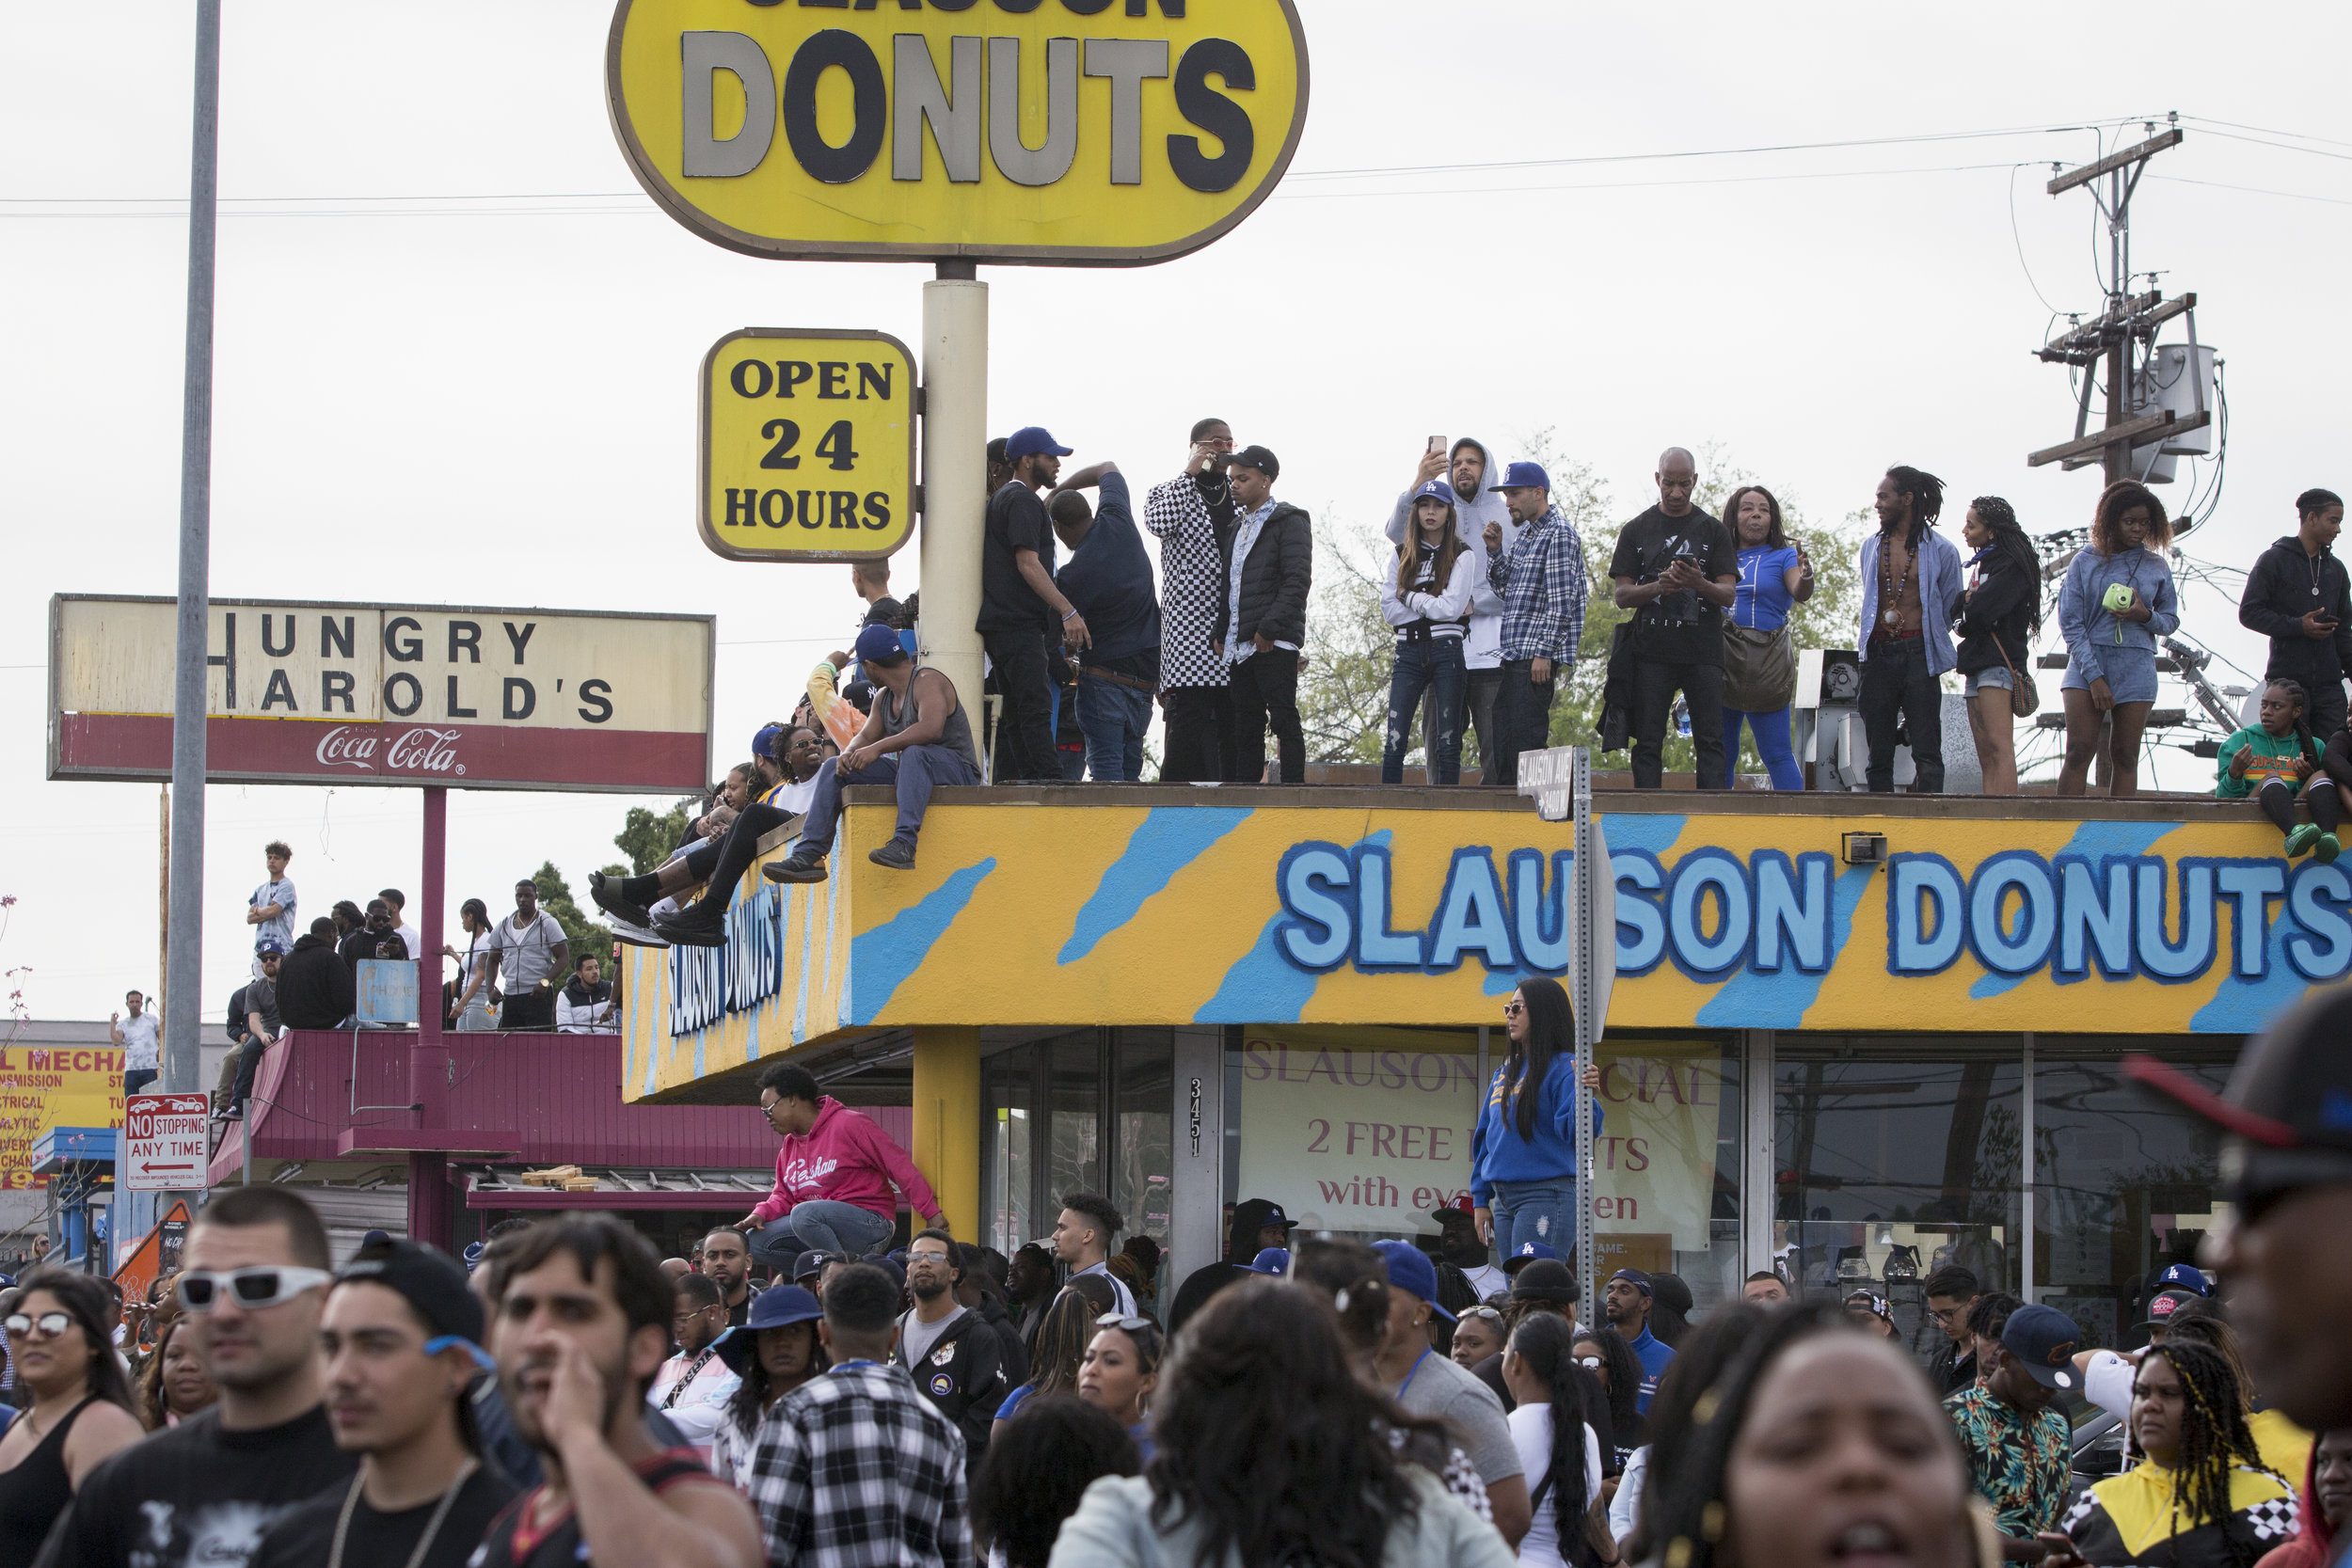 """Fans take to the roofs of businesses and homes as they wait for the Celebration of Life procession carrying the casket of Nipsey Hussle to ride down Slauson in Los Angeles, California on April 11, 2019.  The hearse carrying the casket of the slain rapper, Nipsey Hussle, will journey a 25.5 mile """"Victory Lap"""" through South Central and ending at the Angelus Funeral home to allow his fans, who could not attend the ceremony, to say goodbye.  (Jose Lopez)"""